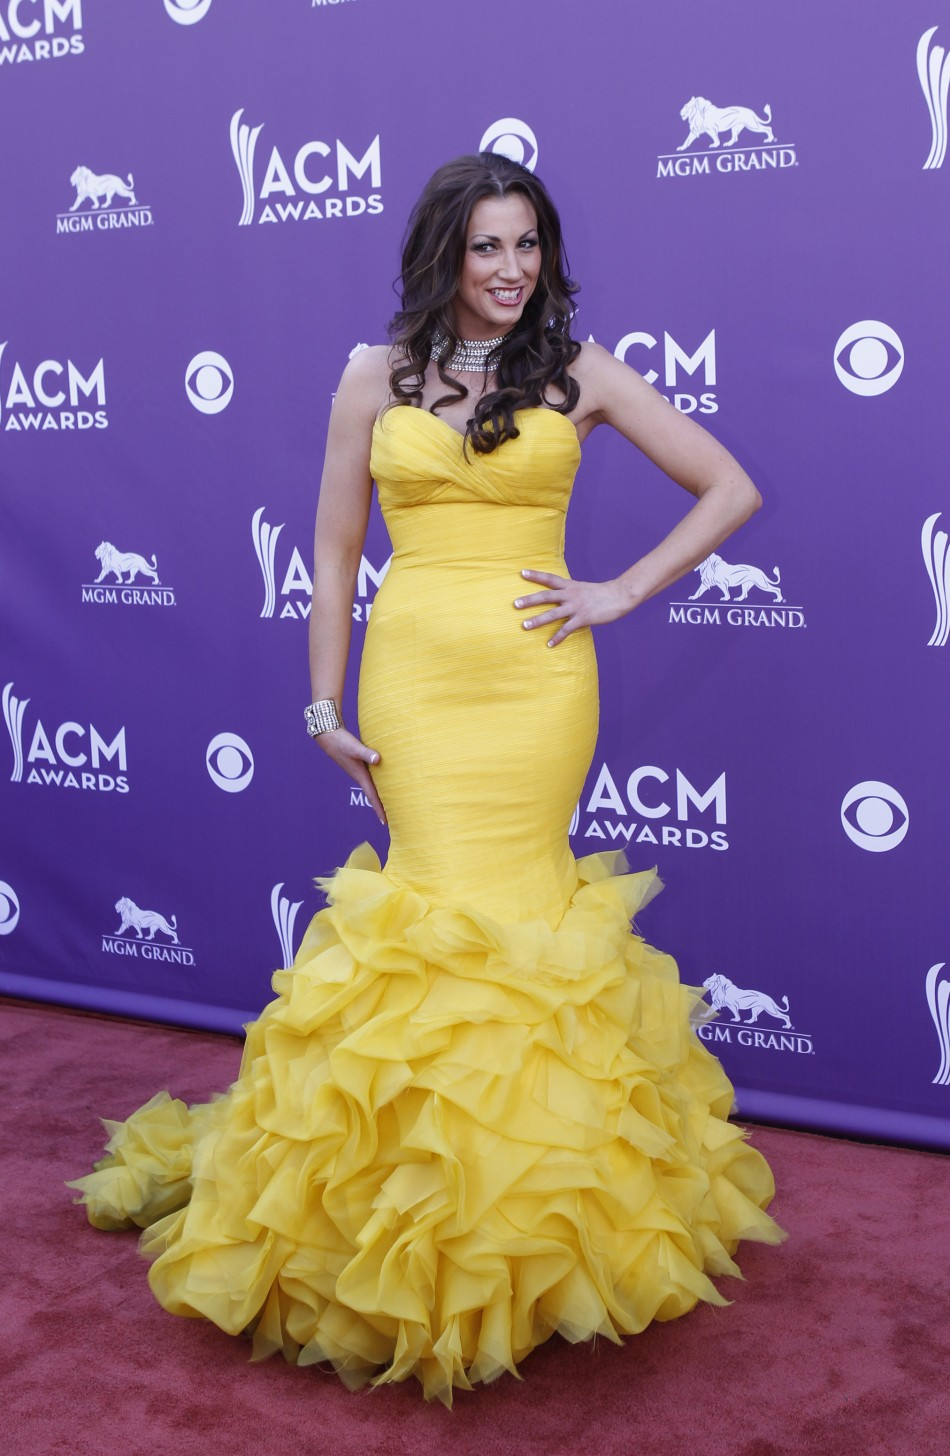 Singer Danielle Peck poses as she arrives at the 48th ACM Awards in Las Vegas, April 7, 2013.